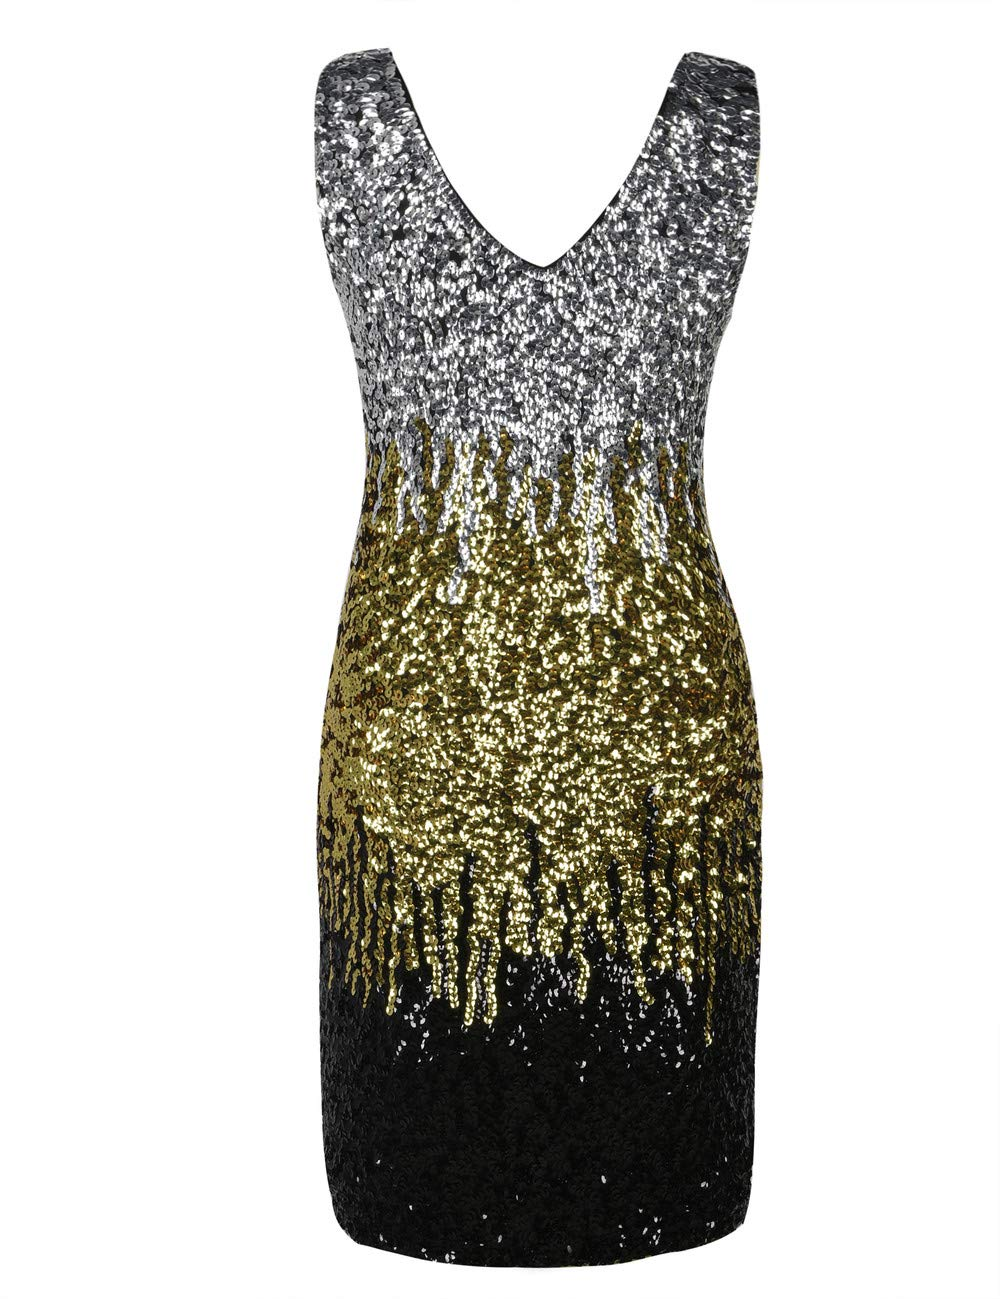 ac558e0029f5 Home/Brands/PrettyGuide/PrettyGuide Women Sexy Deep V Neck Sequin Glitter  Bodycon Stretchy Mini Party Dress L Silver/Gold/Black. ; 